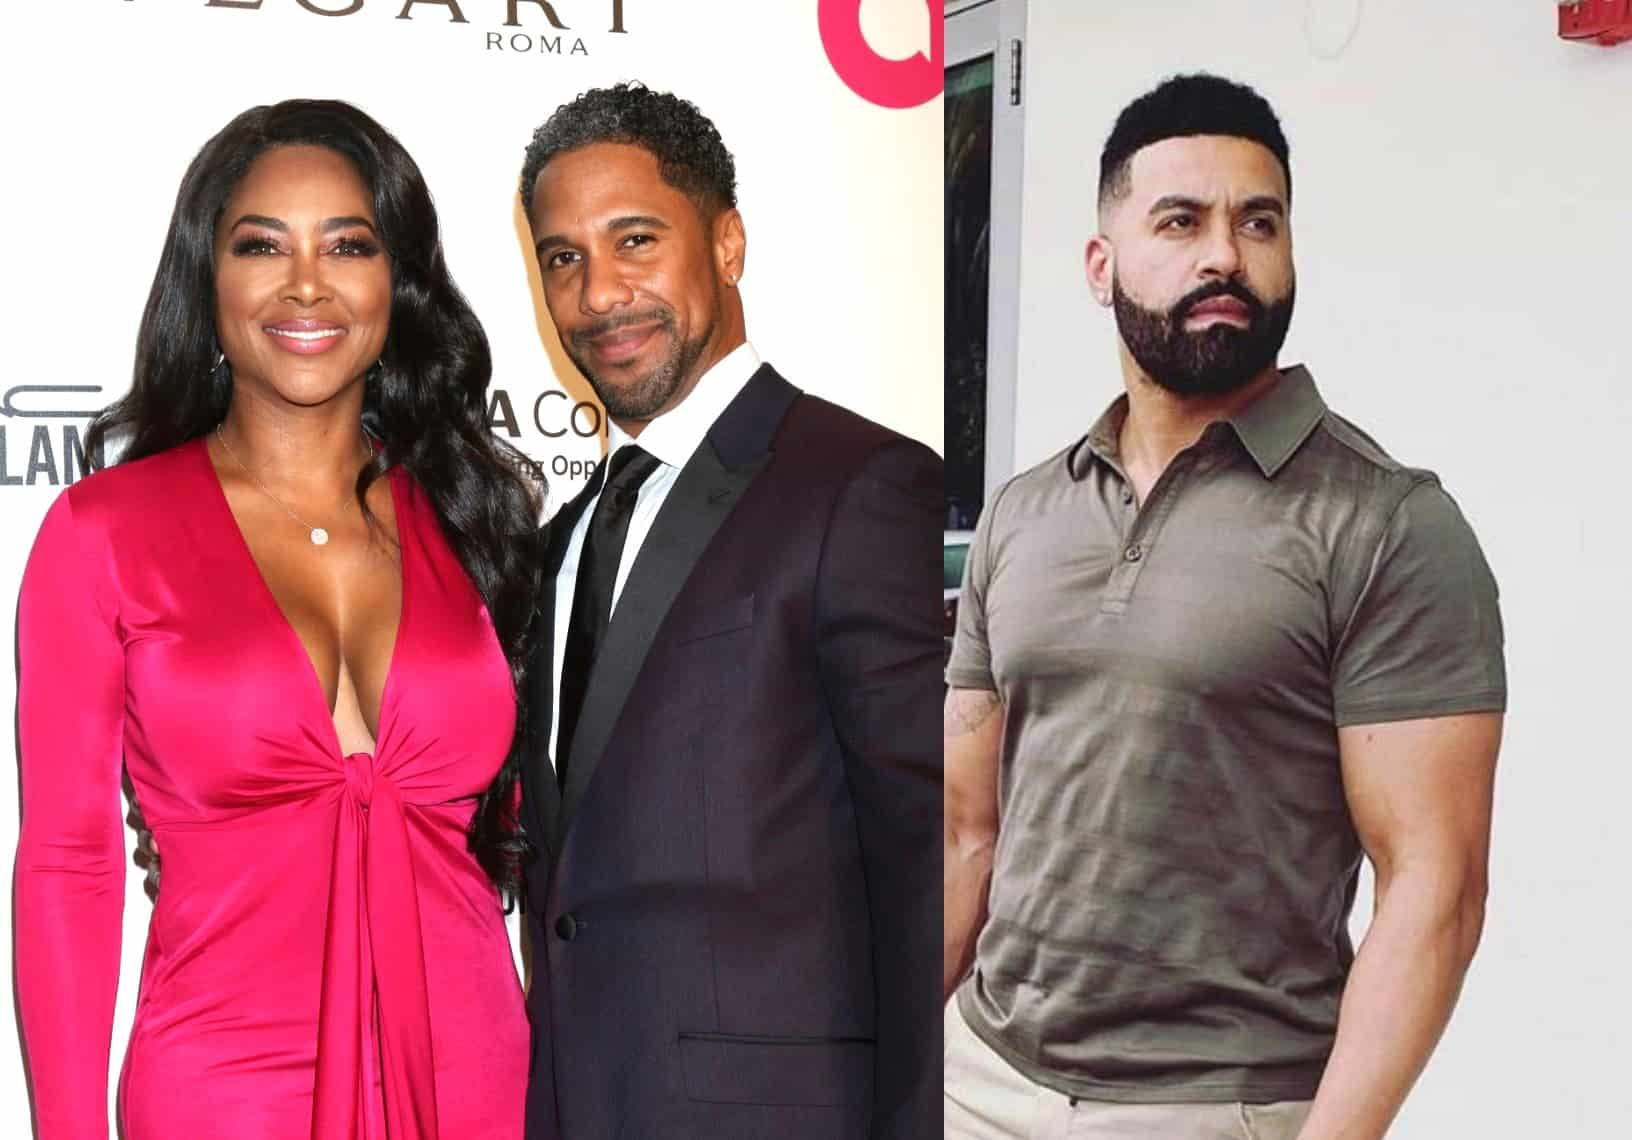 RHOA Star Kenya Moore Reacts to Apollo Nida Bashing Marc Daly and Clarifies Why She Can't Communicate With Marc's Parents, Plus She Says Marc Wants to Work on Their Marriage